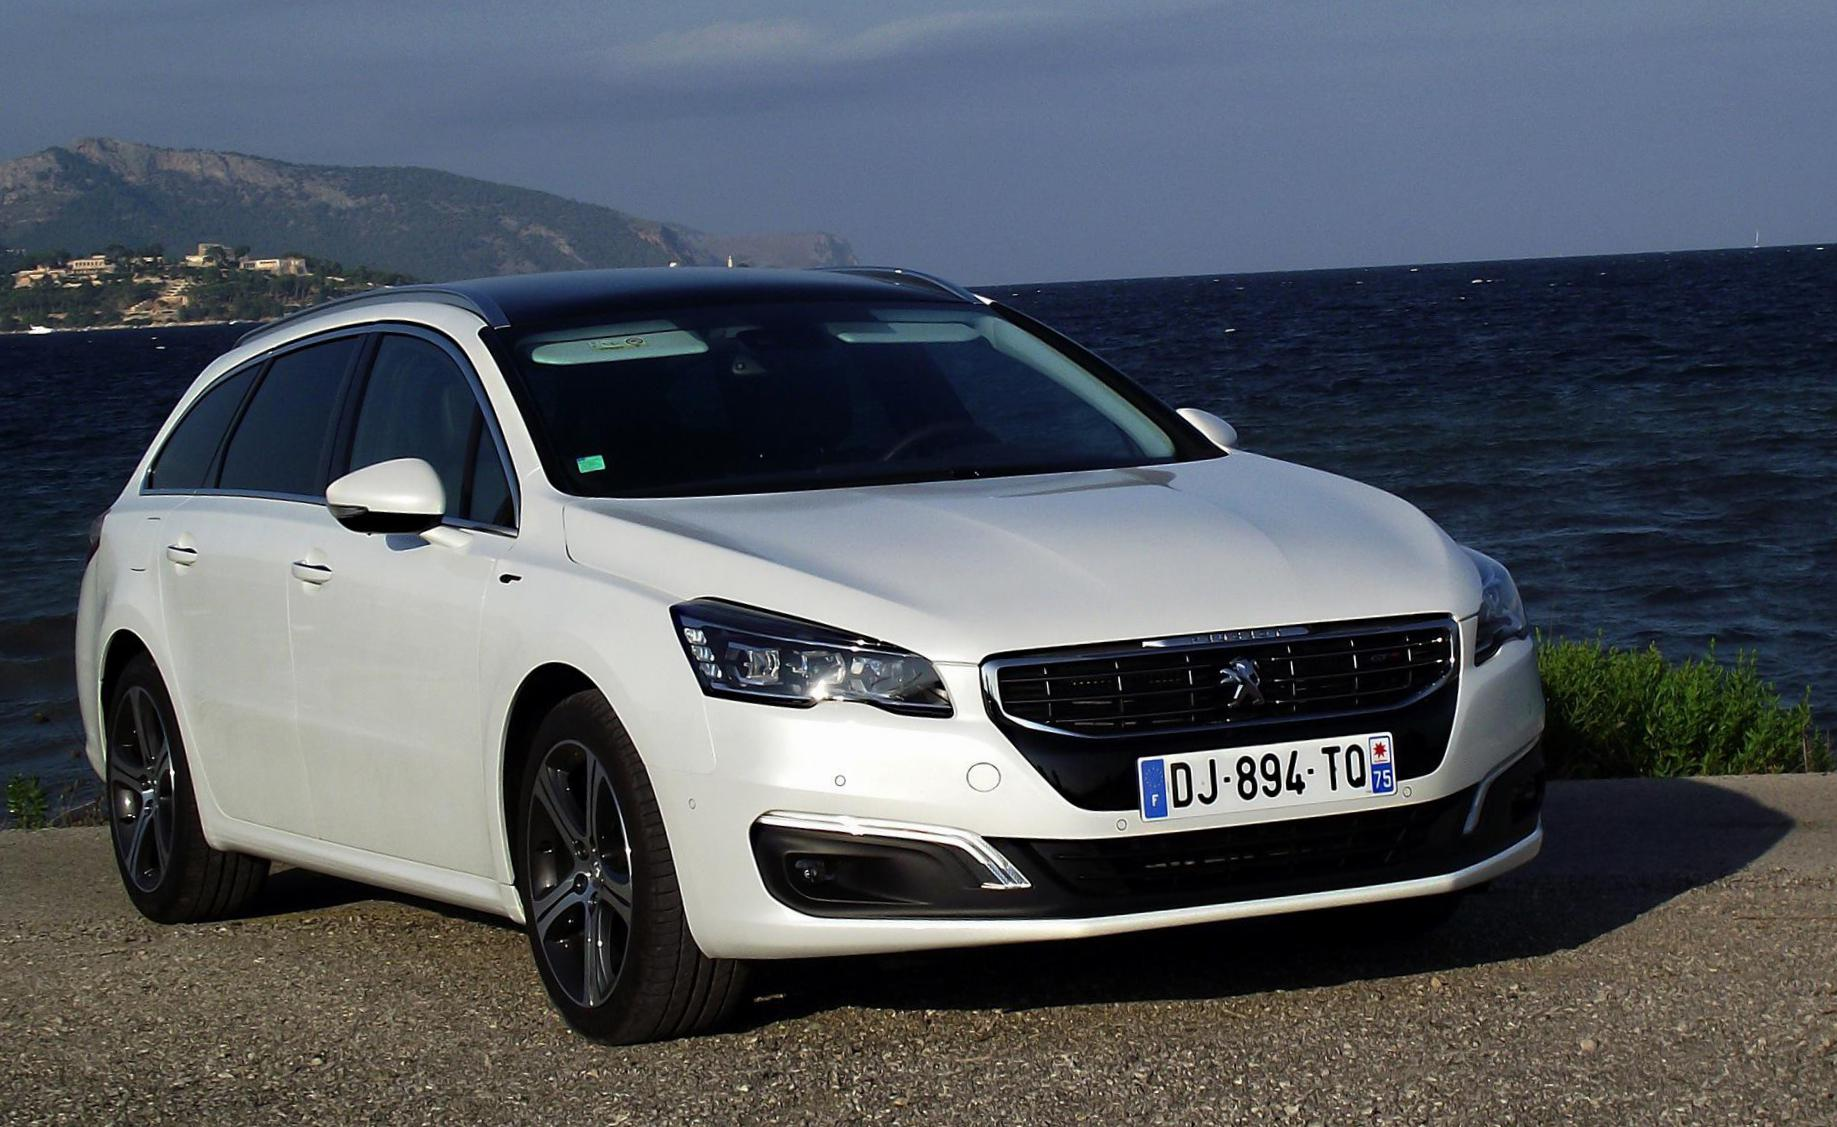 peugeot 508 photos and specs photo peugeot 508 tuning. Black Bedroom Furniture Sets. Home Design Ideas